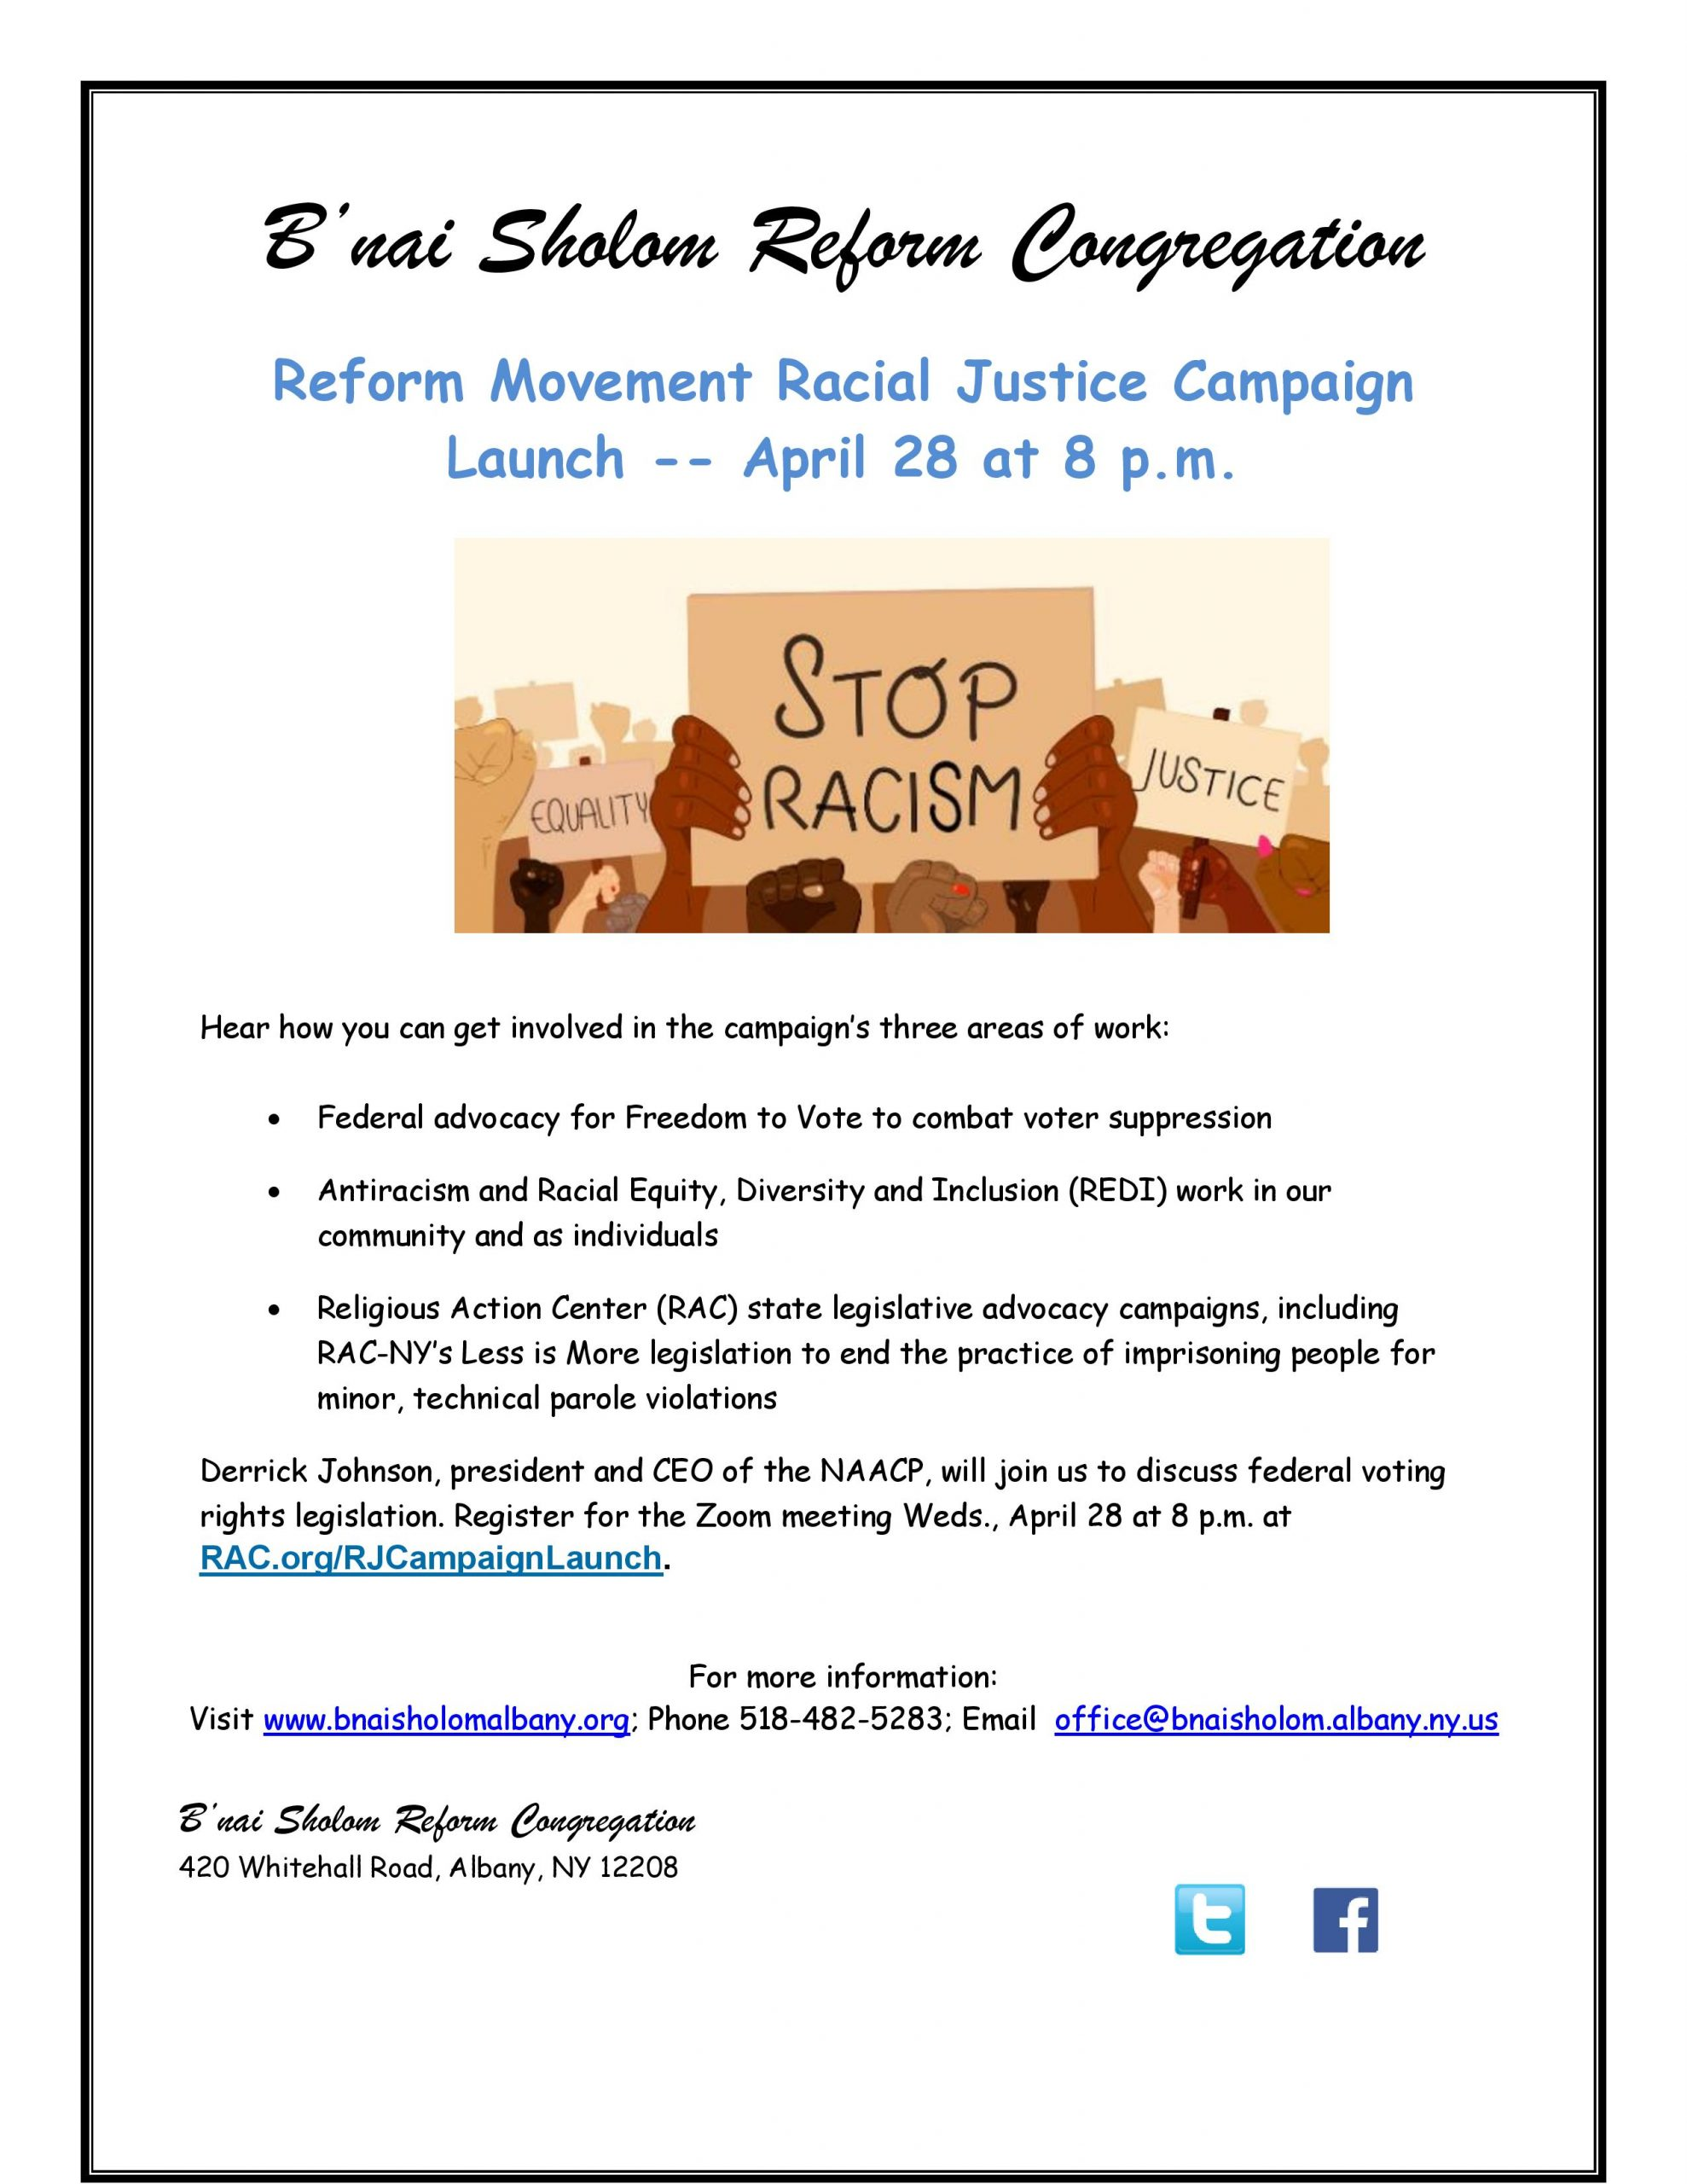 Reform Movement Racial Justice Campaign Lauch